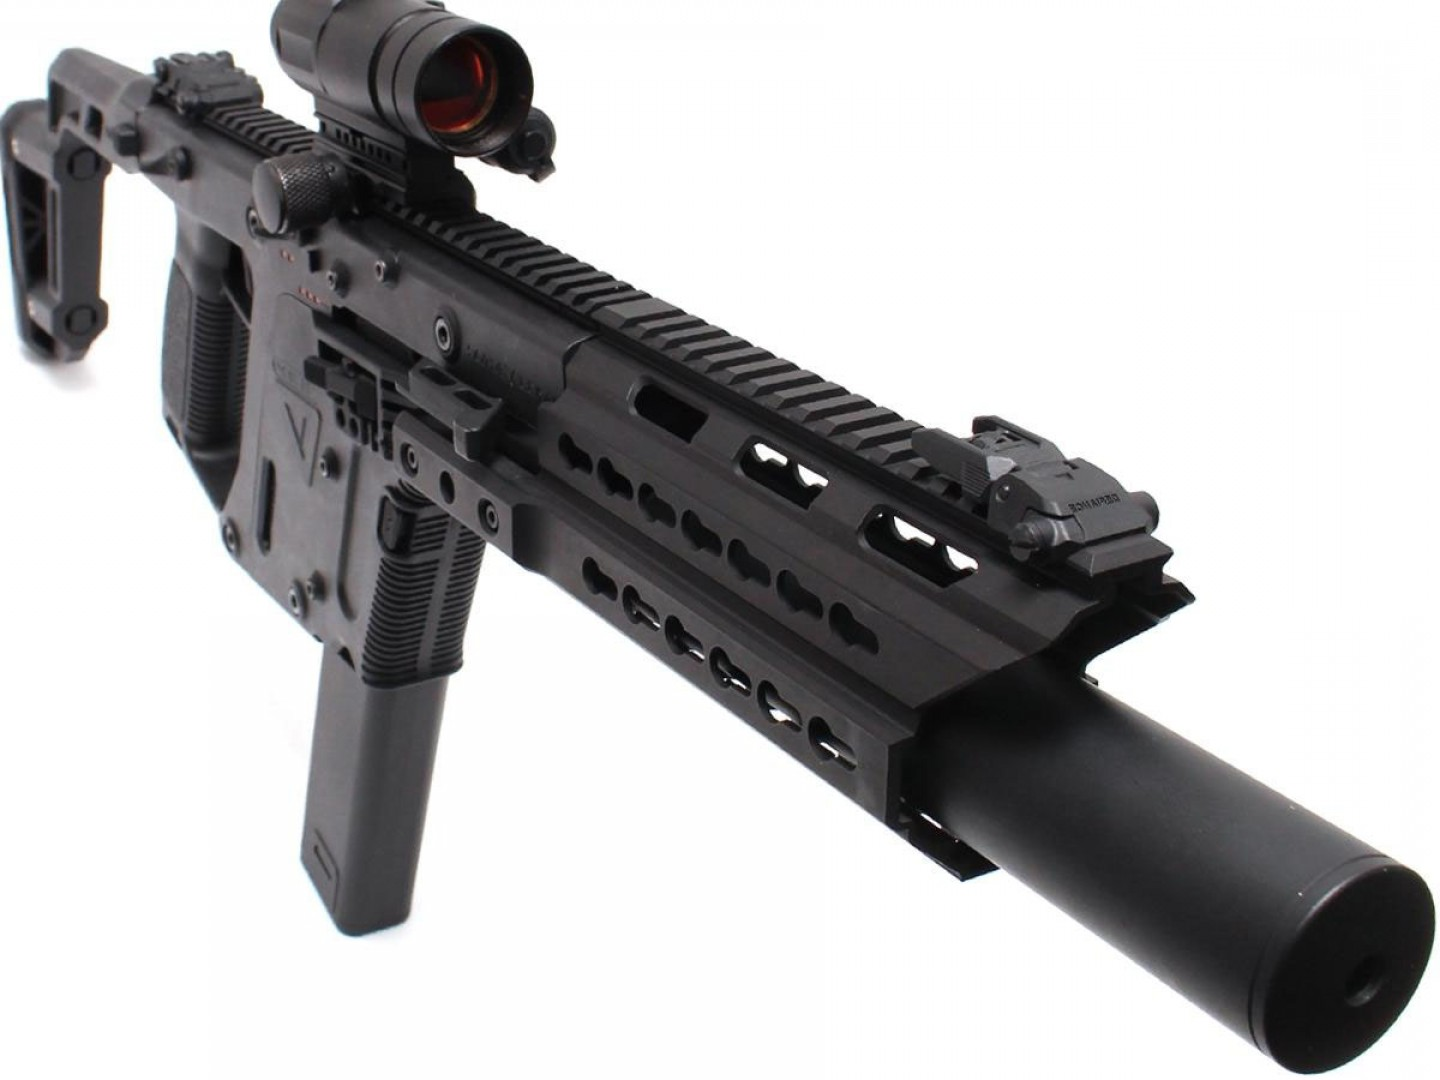 For Kriss Vector Side Picatinny Rails: Laylax Kriss Vector Extended Keymod Handguard Size Longp